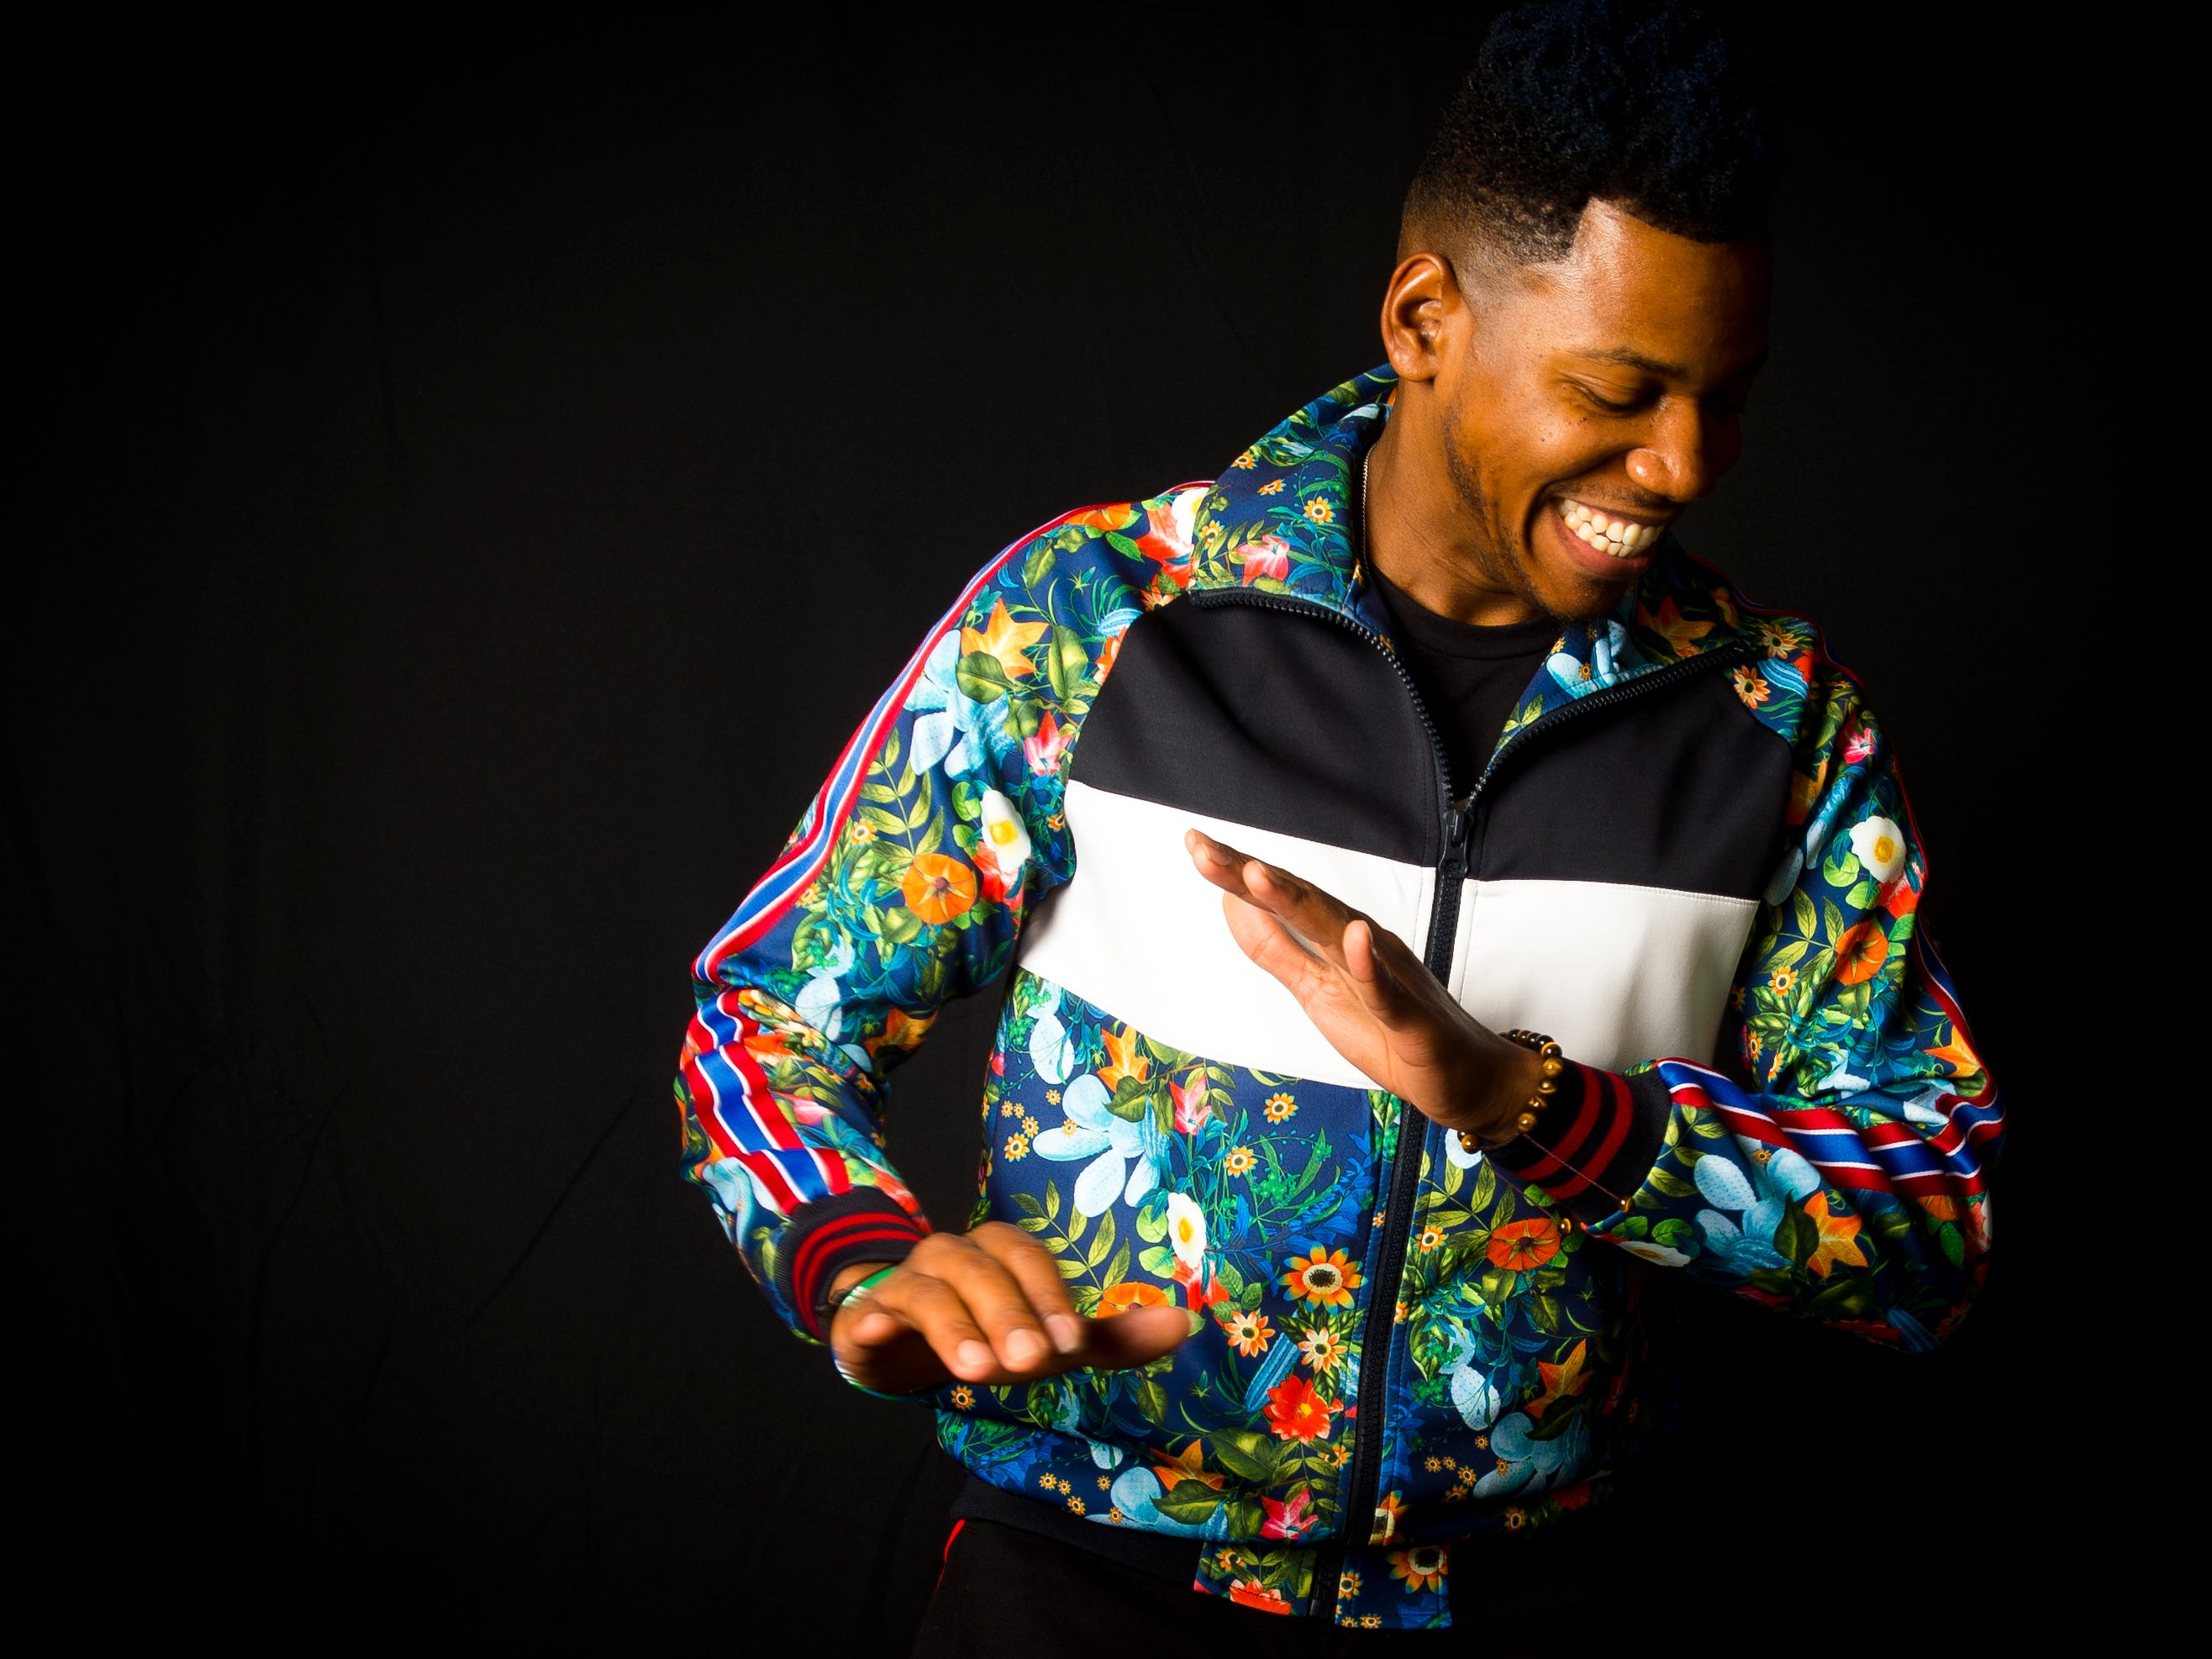 Chris Blue, photographed in the News Sentinel photo studio on Thursday, August 23, 2018, will perform at the Tennessee Valley Fair on Saturday, September 8, 2018.